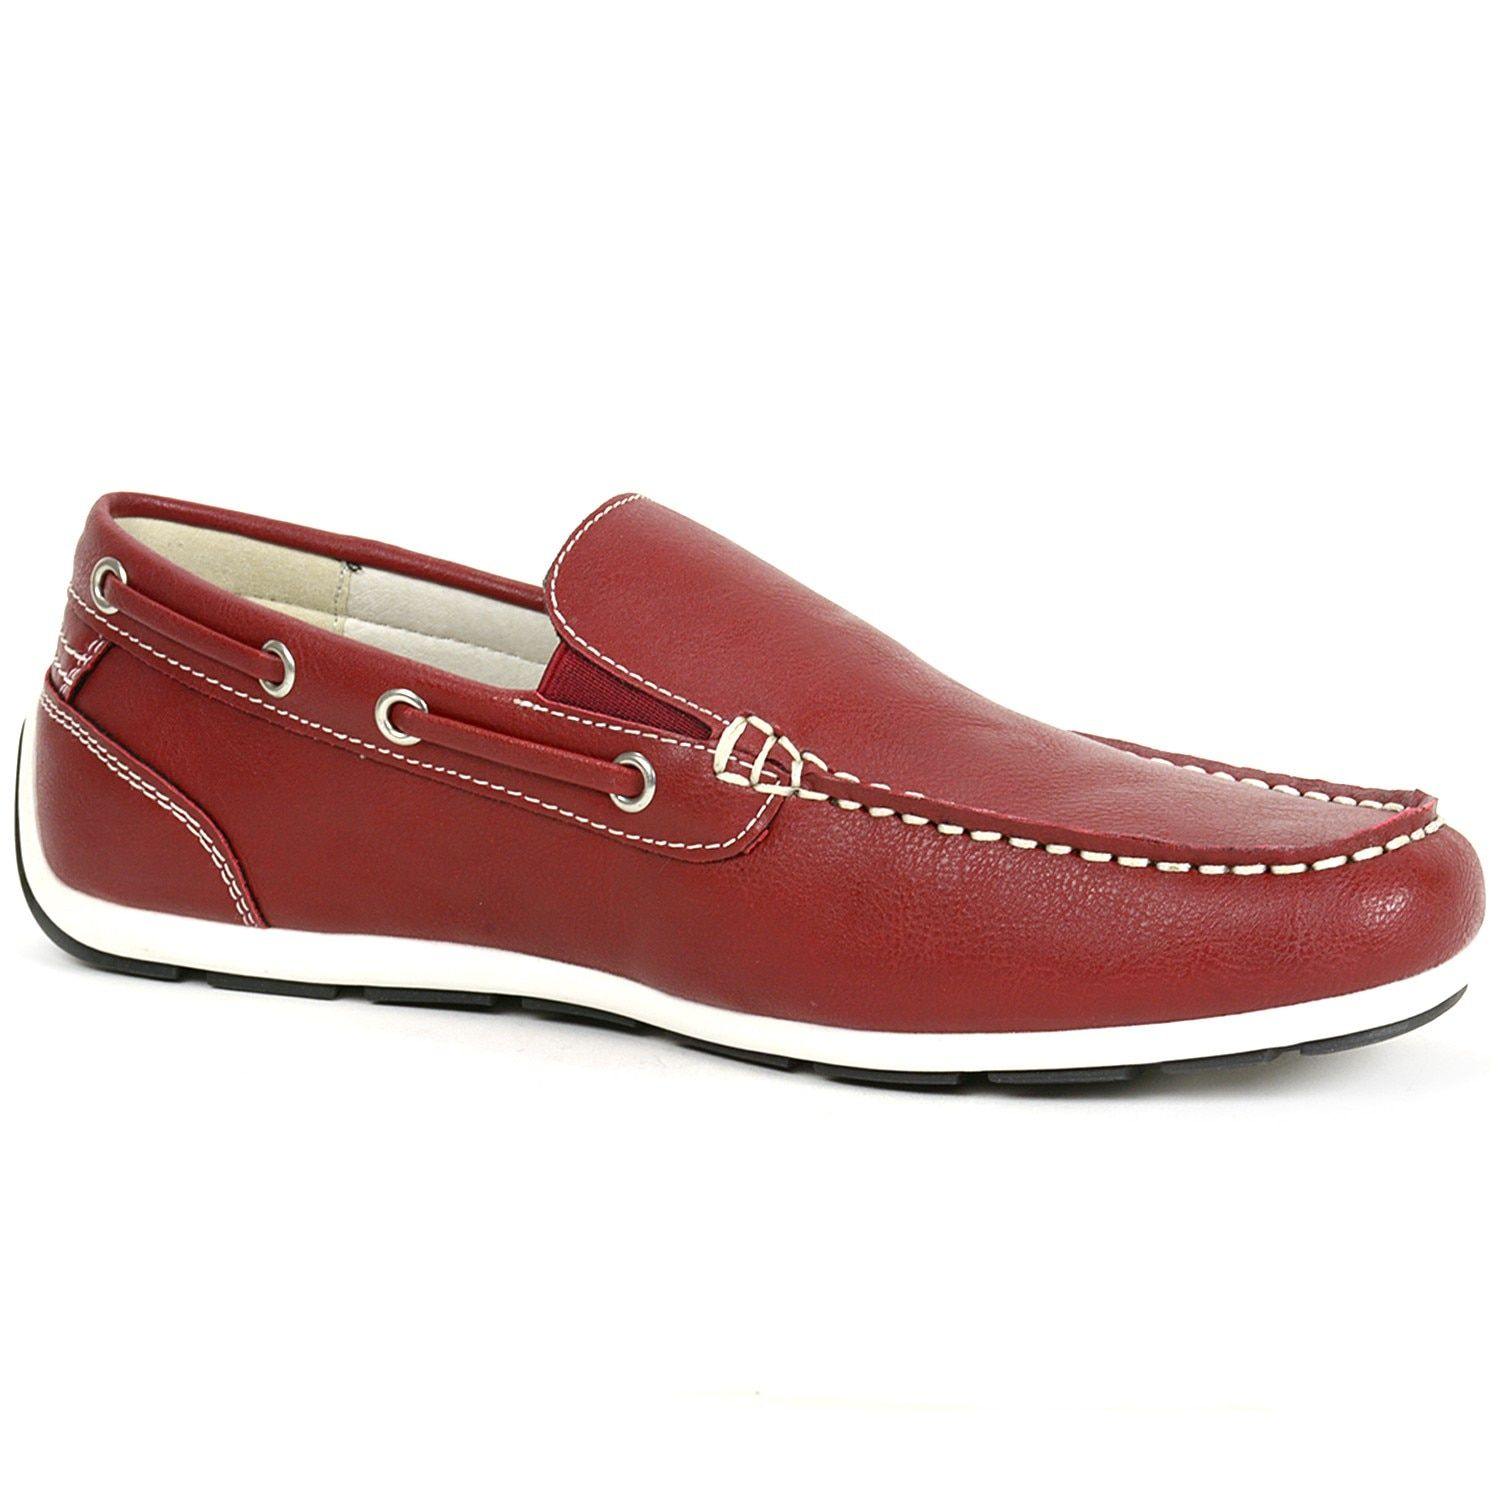 bfaa5818ca7e80 GBX Mens Casual Loafers Slip On Double Gore Moc Toe Boat Shoes Comfort  Moccasins